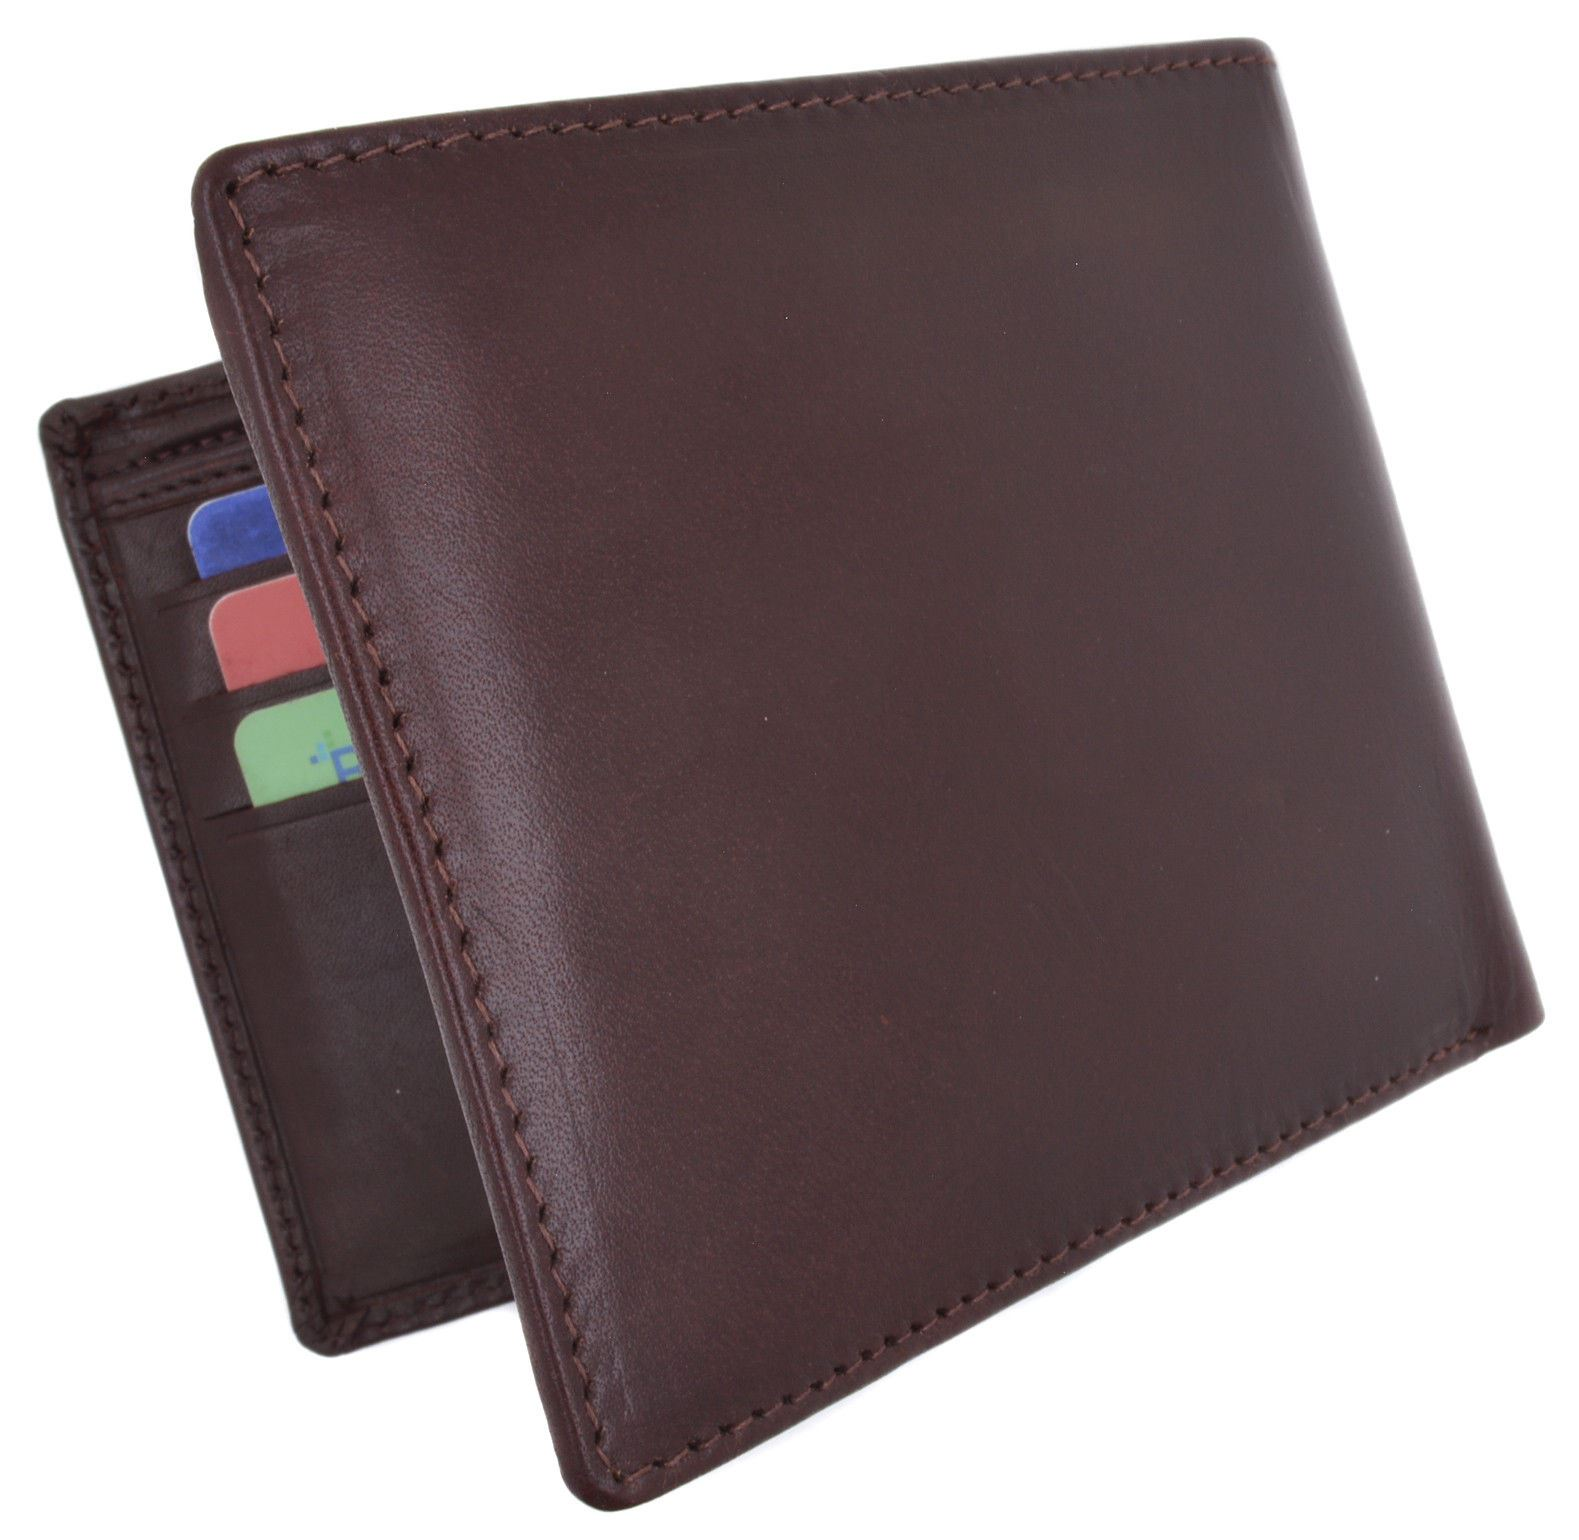 8d38f89e6750 Details about Moga Large Men's Genuine Leather Bifold Wallet With Coin Pouch